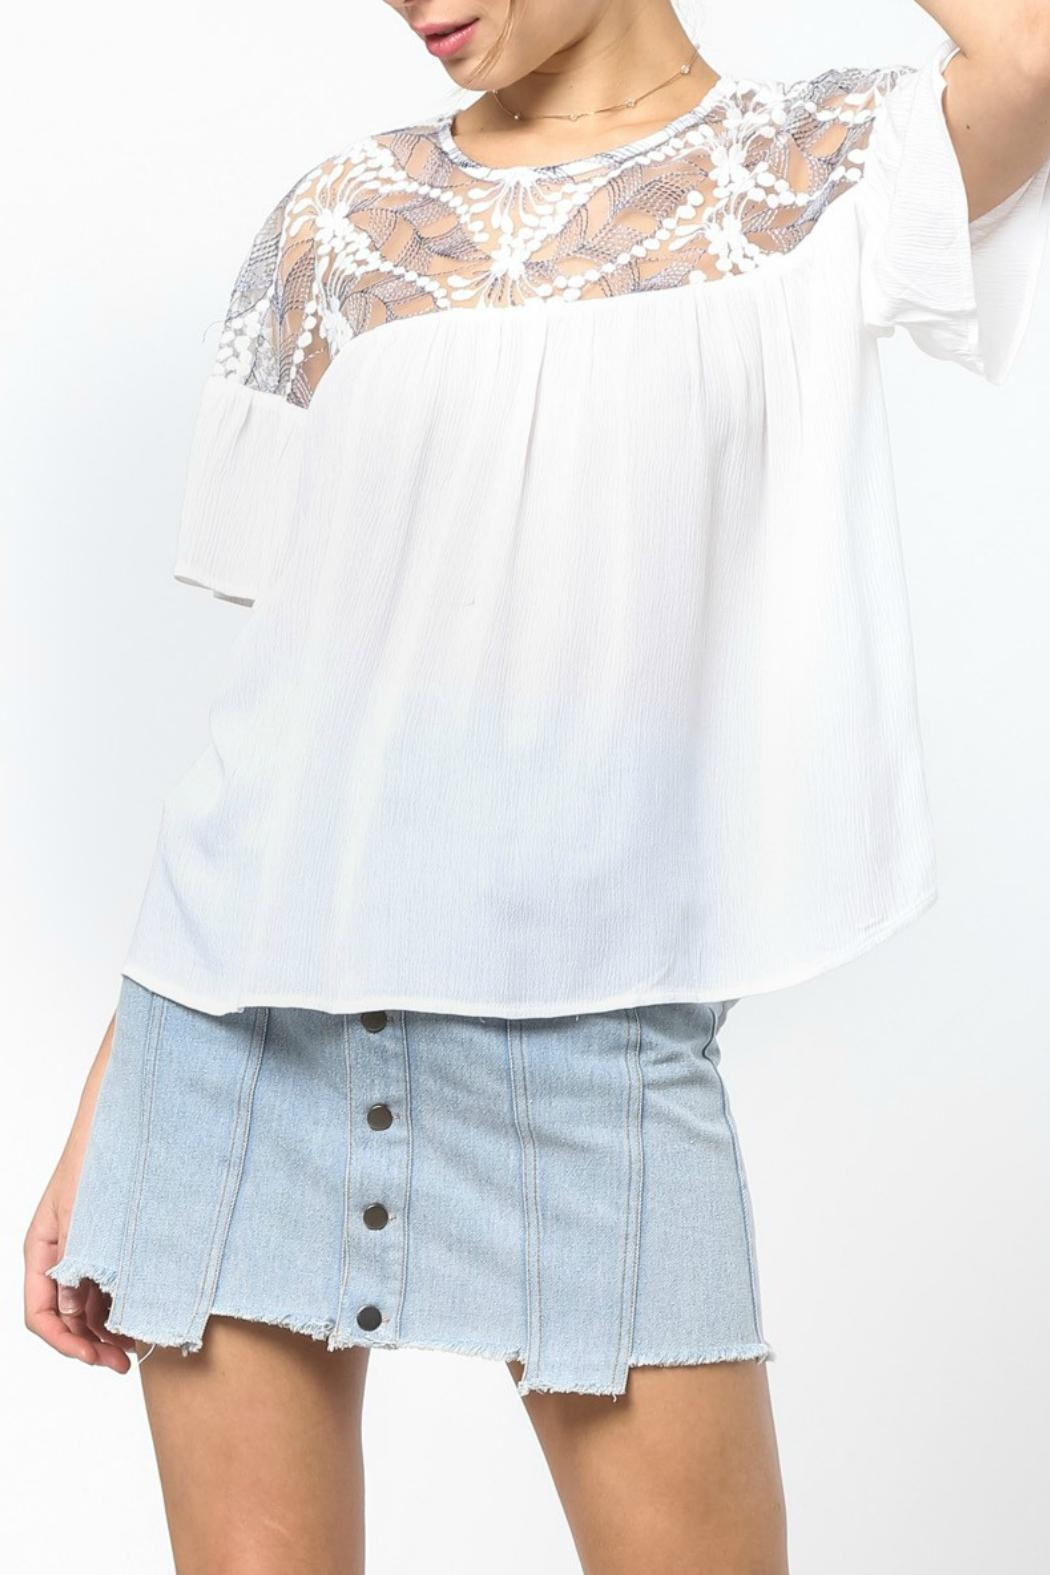 LoveRiche White Embroidered Top - Main Image